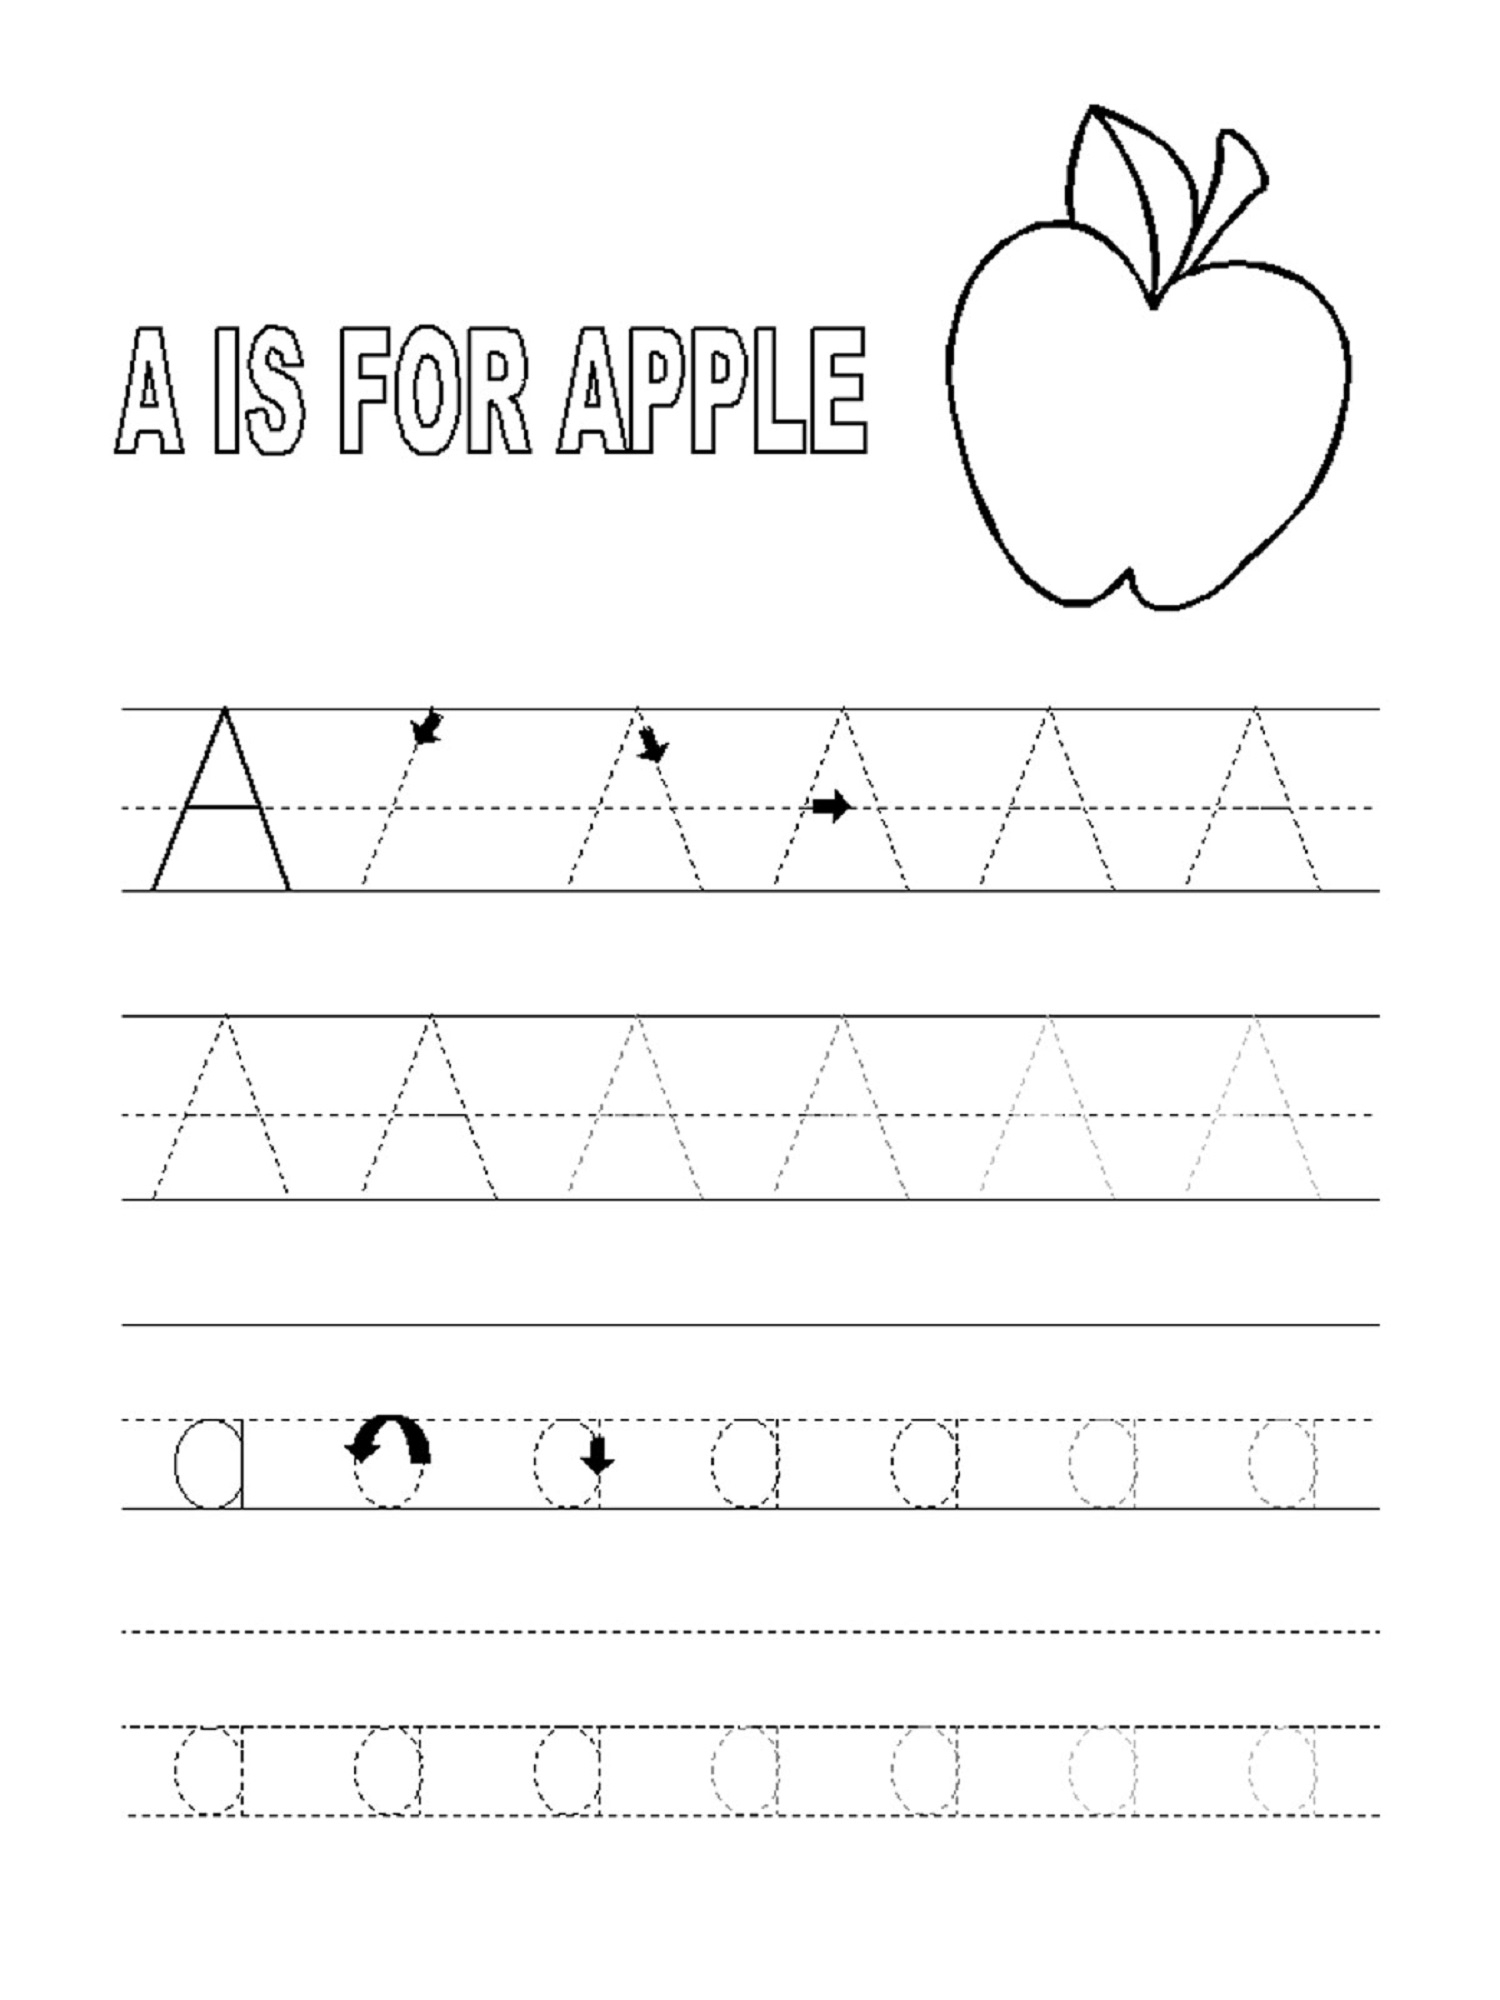 Trace Alphabet Letters For Educative Task Of Pre-Writing intended for Tracing Letters For 3 Year Olds